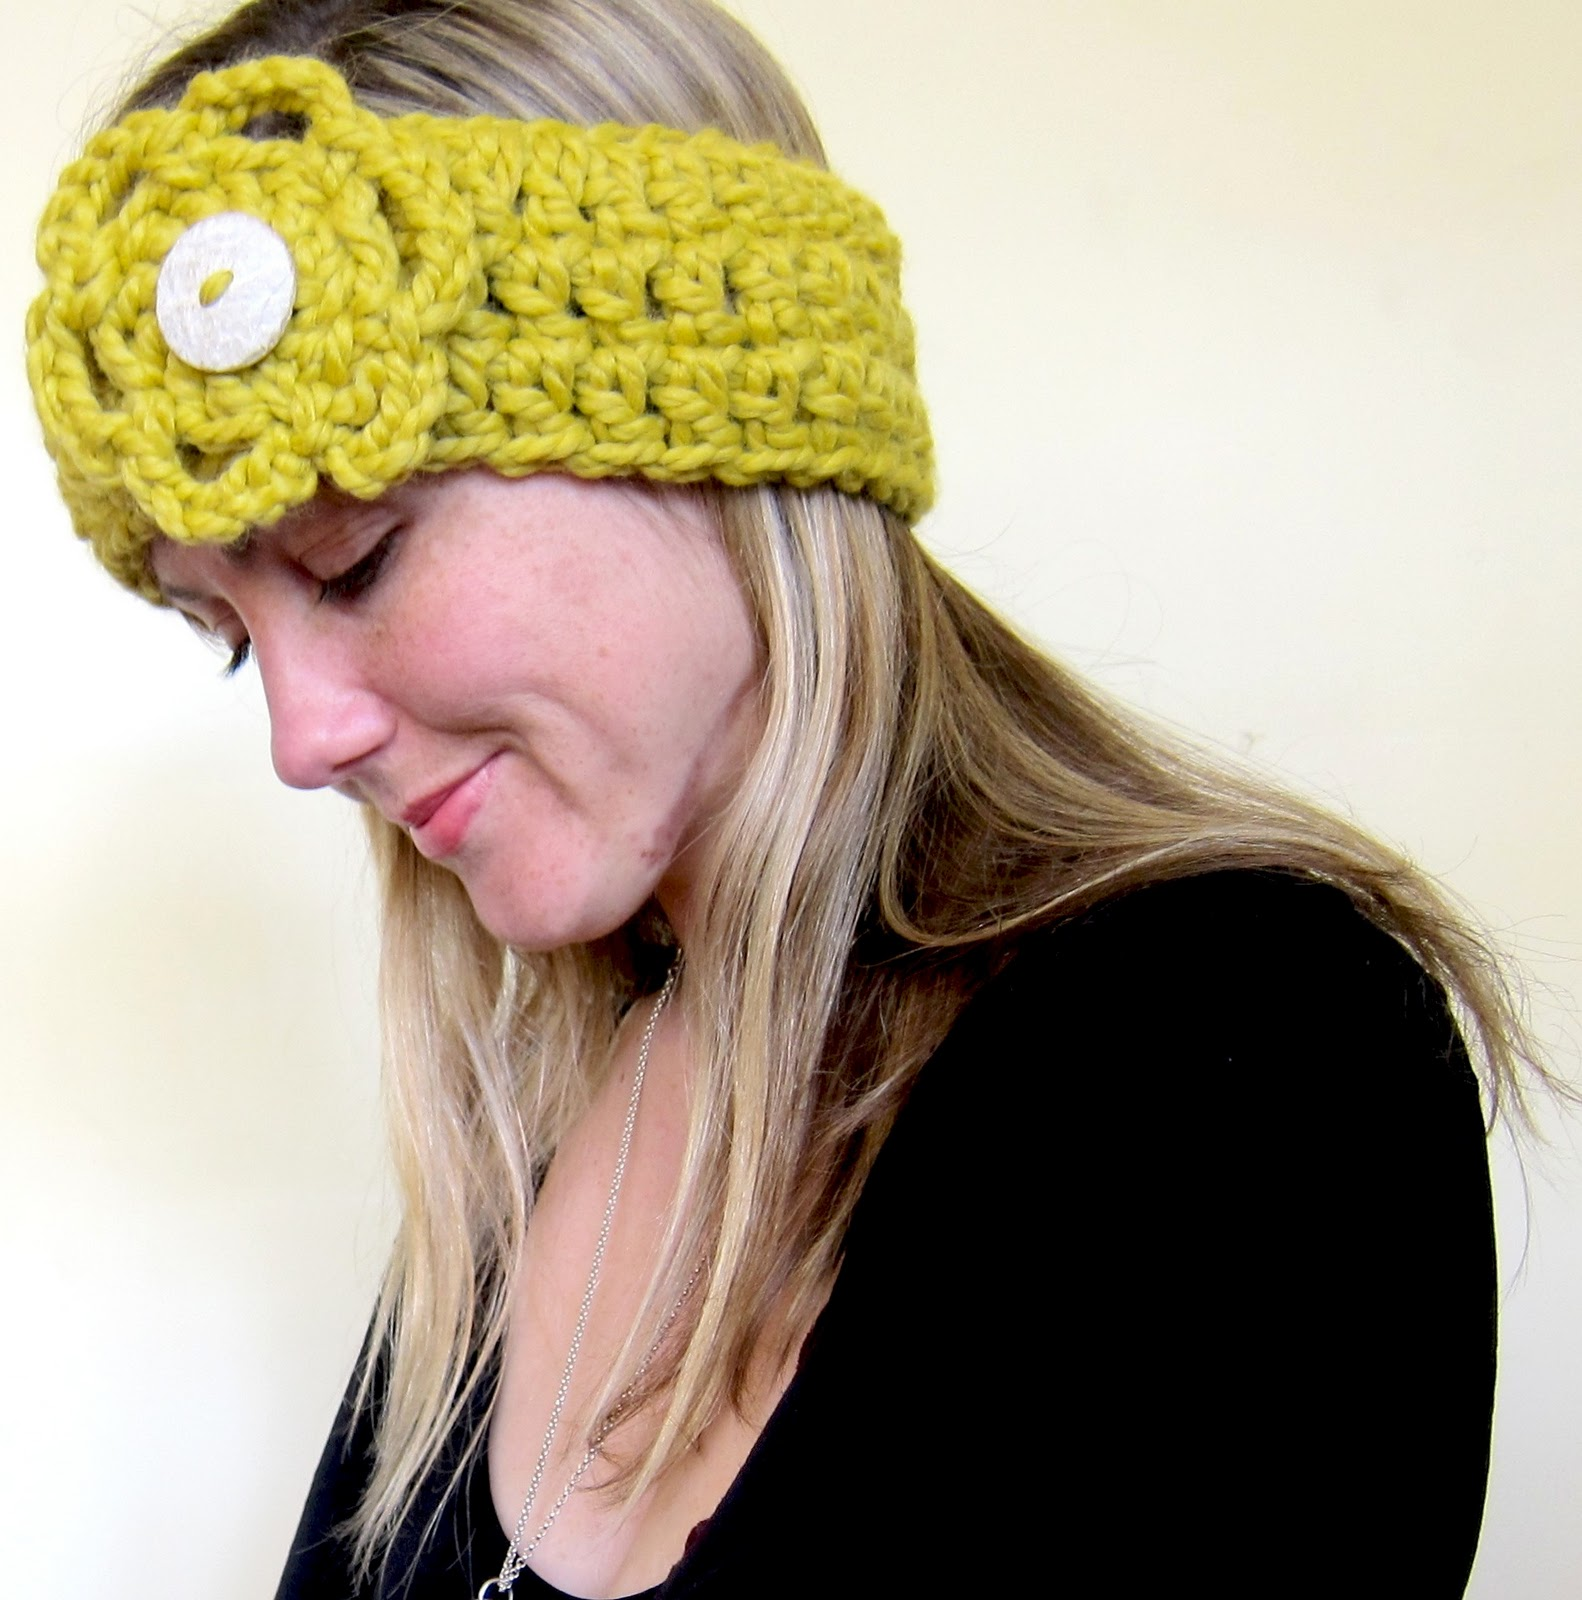 Free Crochet Pattern For Easy Headband : CROCHET HEADBANDS PATTERNS Free Patterns